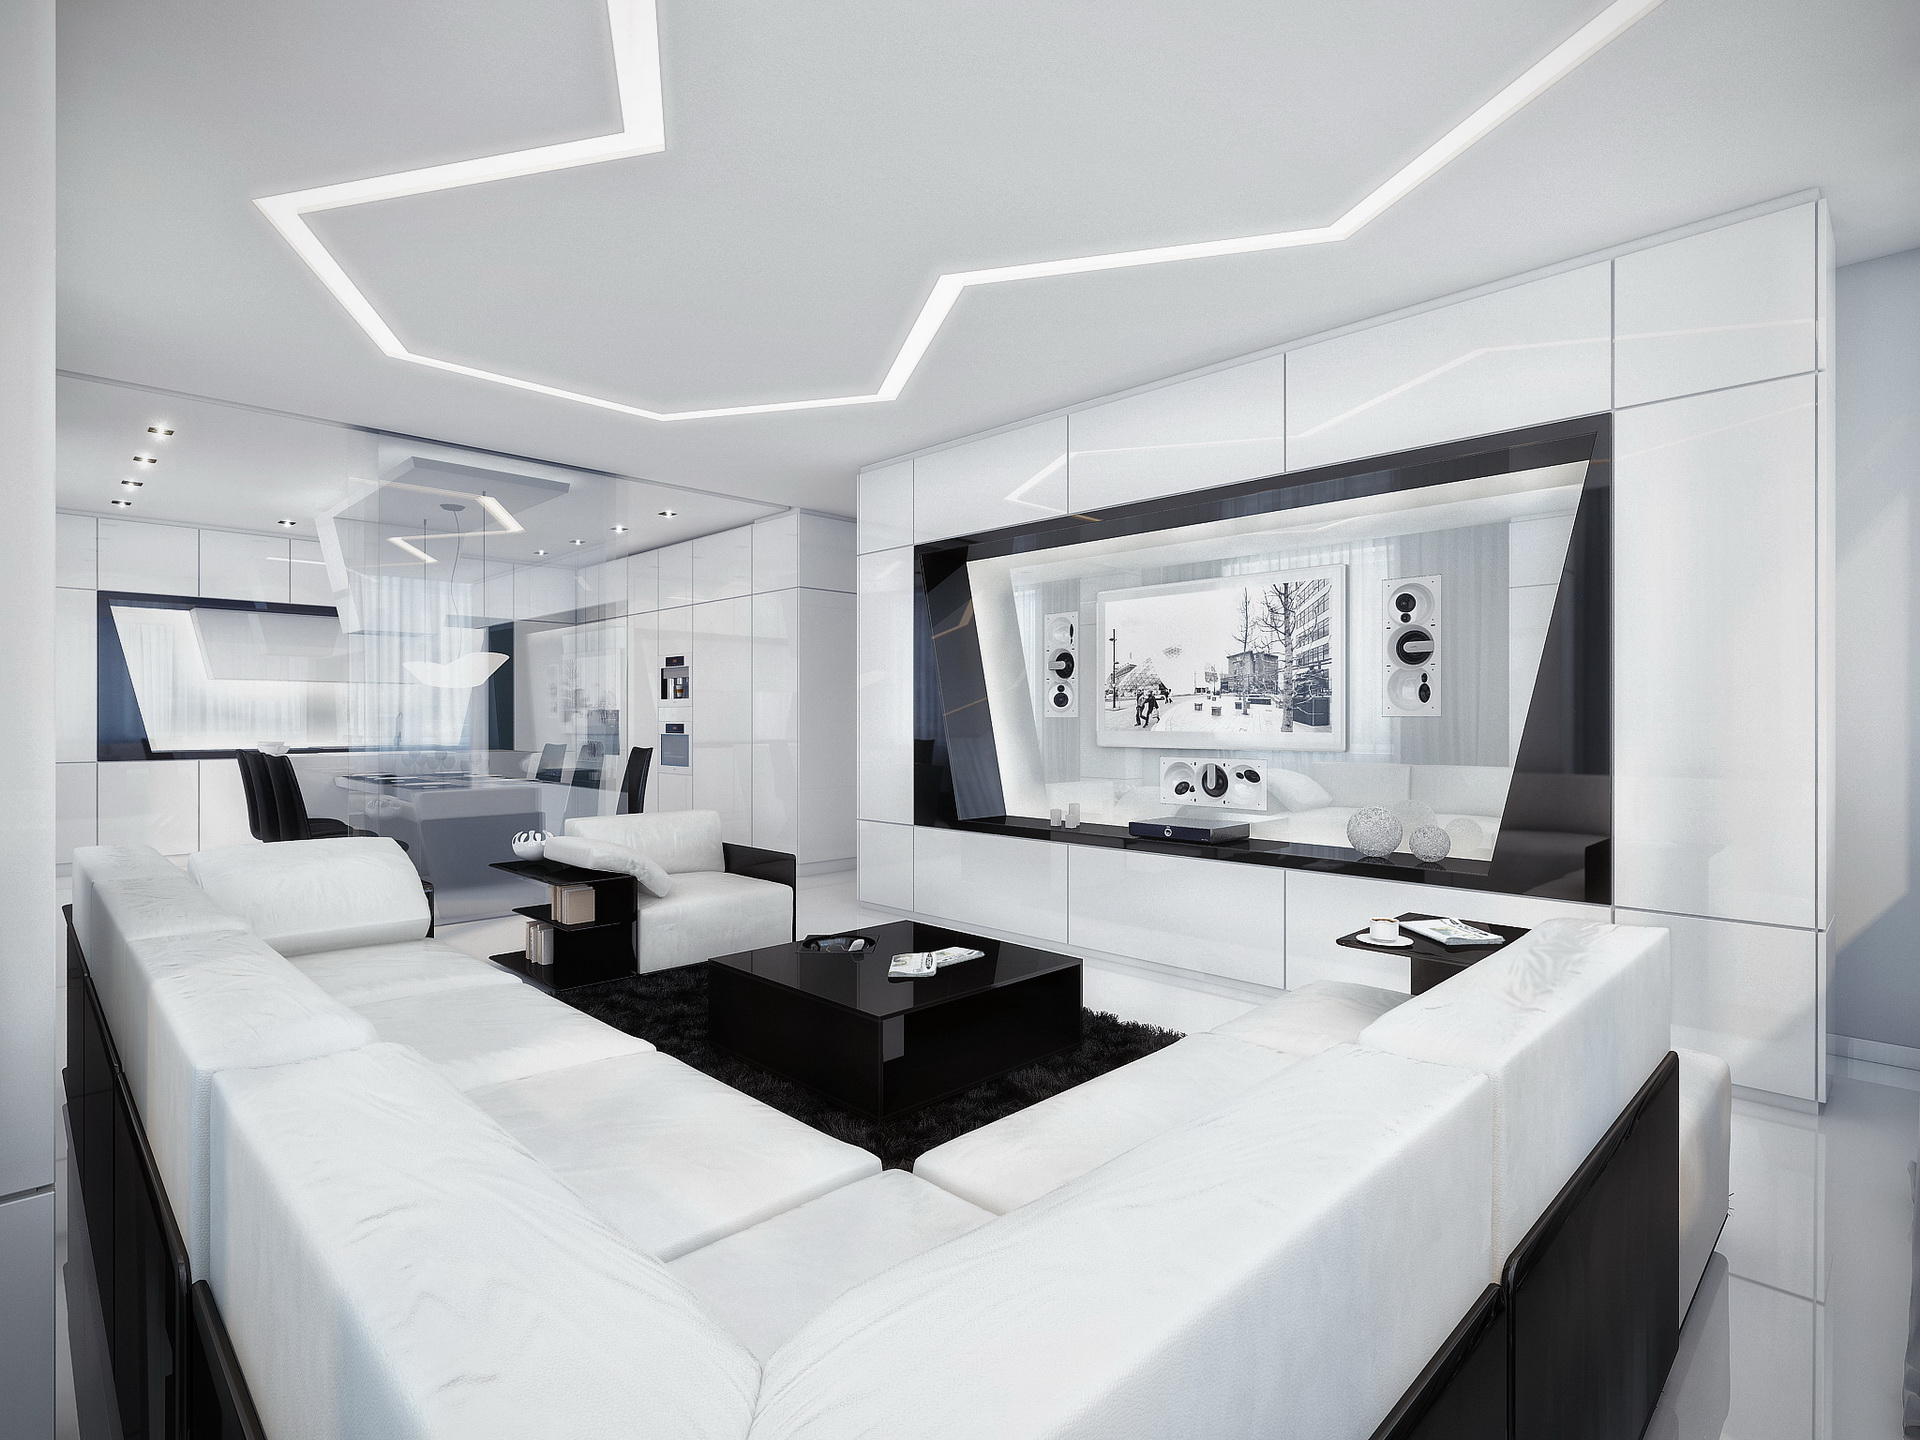 simple room clean lines touch of black elements black and white contemporary design